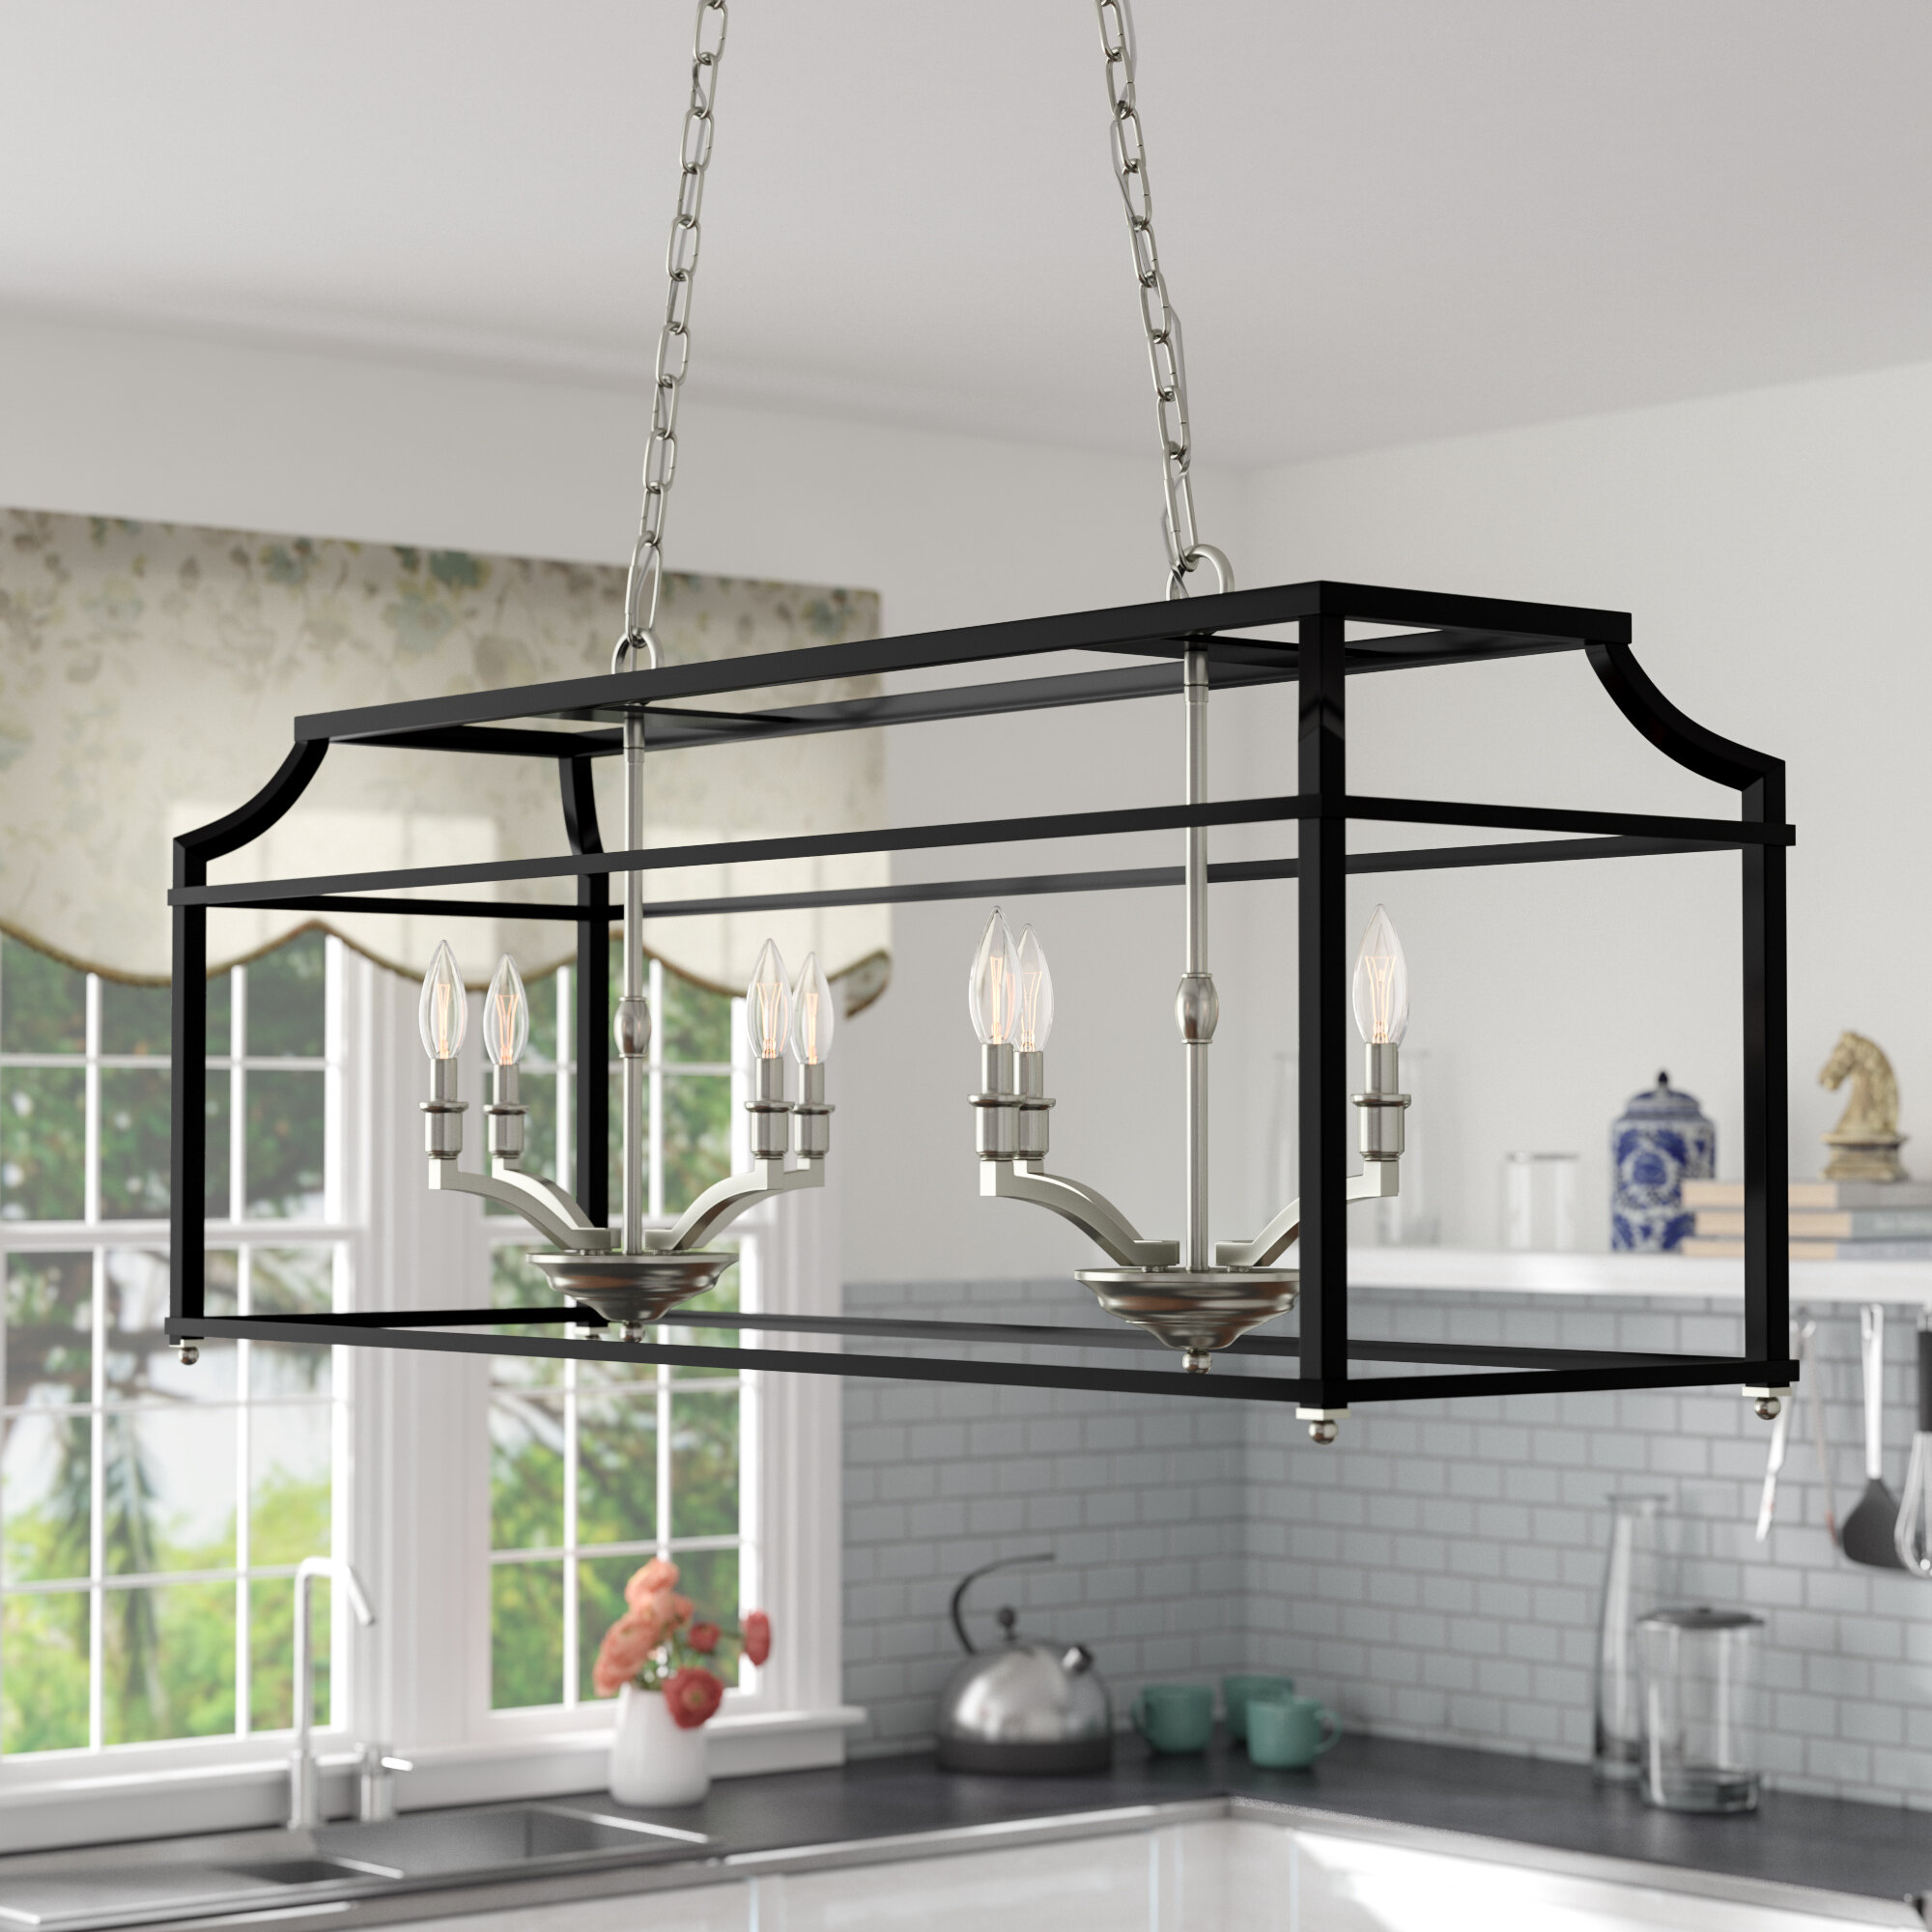 Traditional Darby Home Co Kitchen Island Lighting You Ll Love In 2021 Wayfair